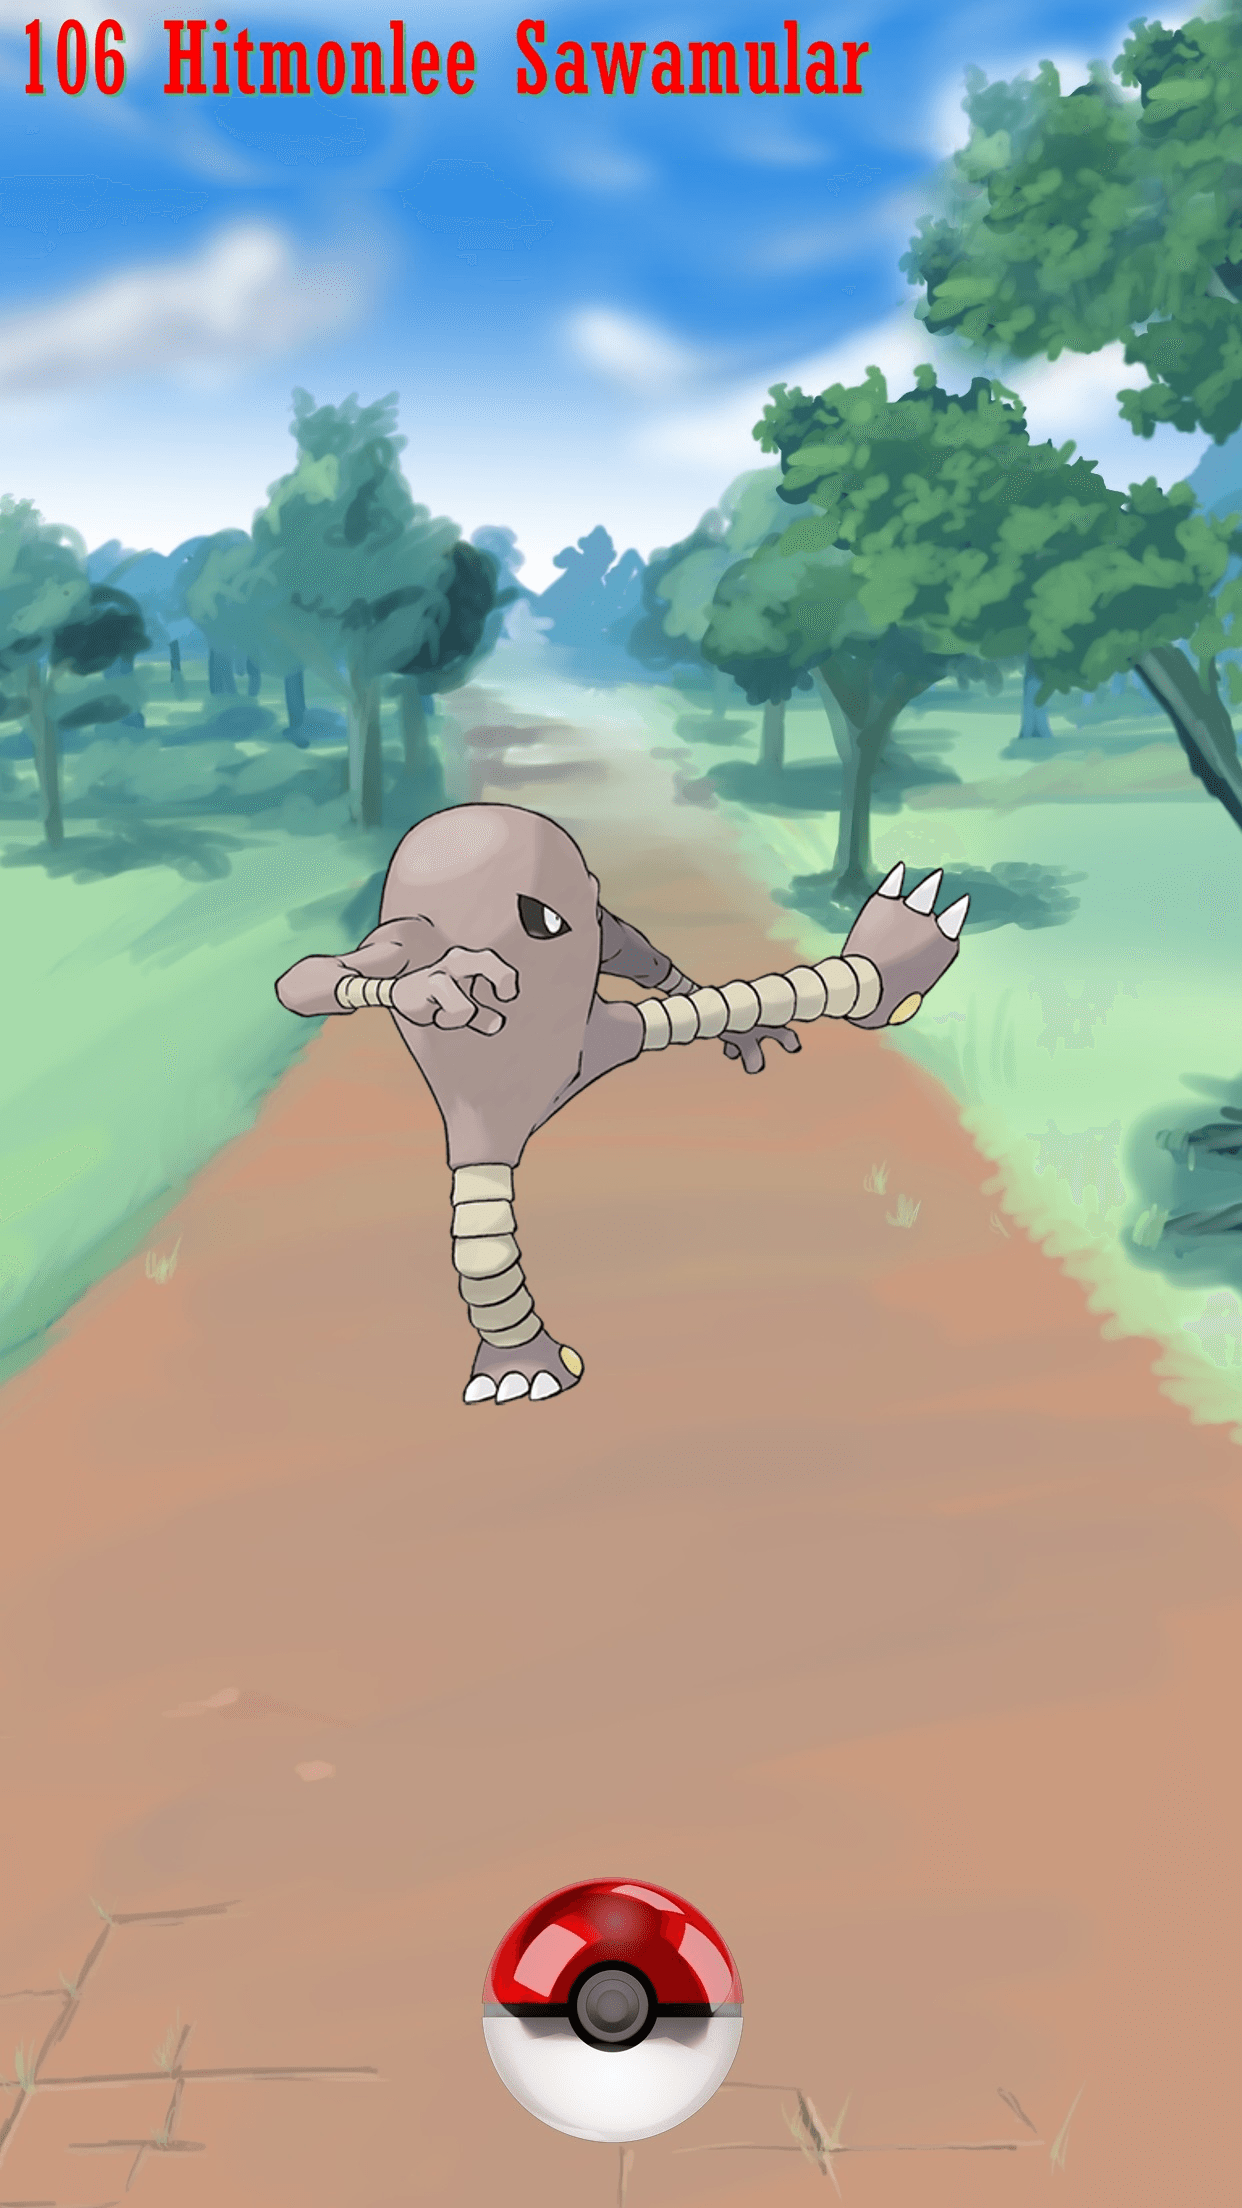 106 Street Pokeball Hitmonlee Sawamular | Wallpaper